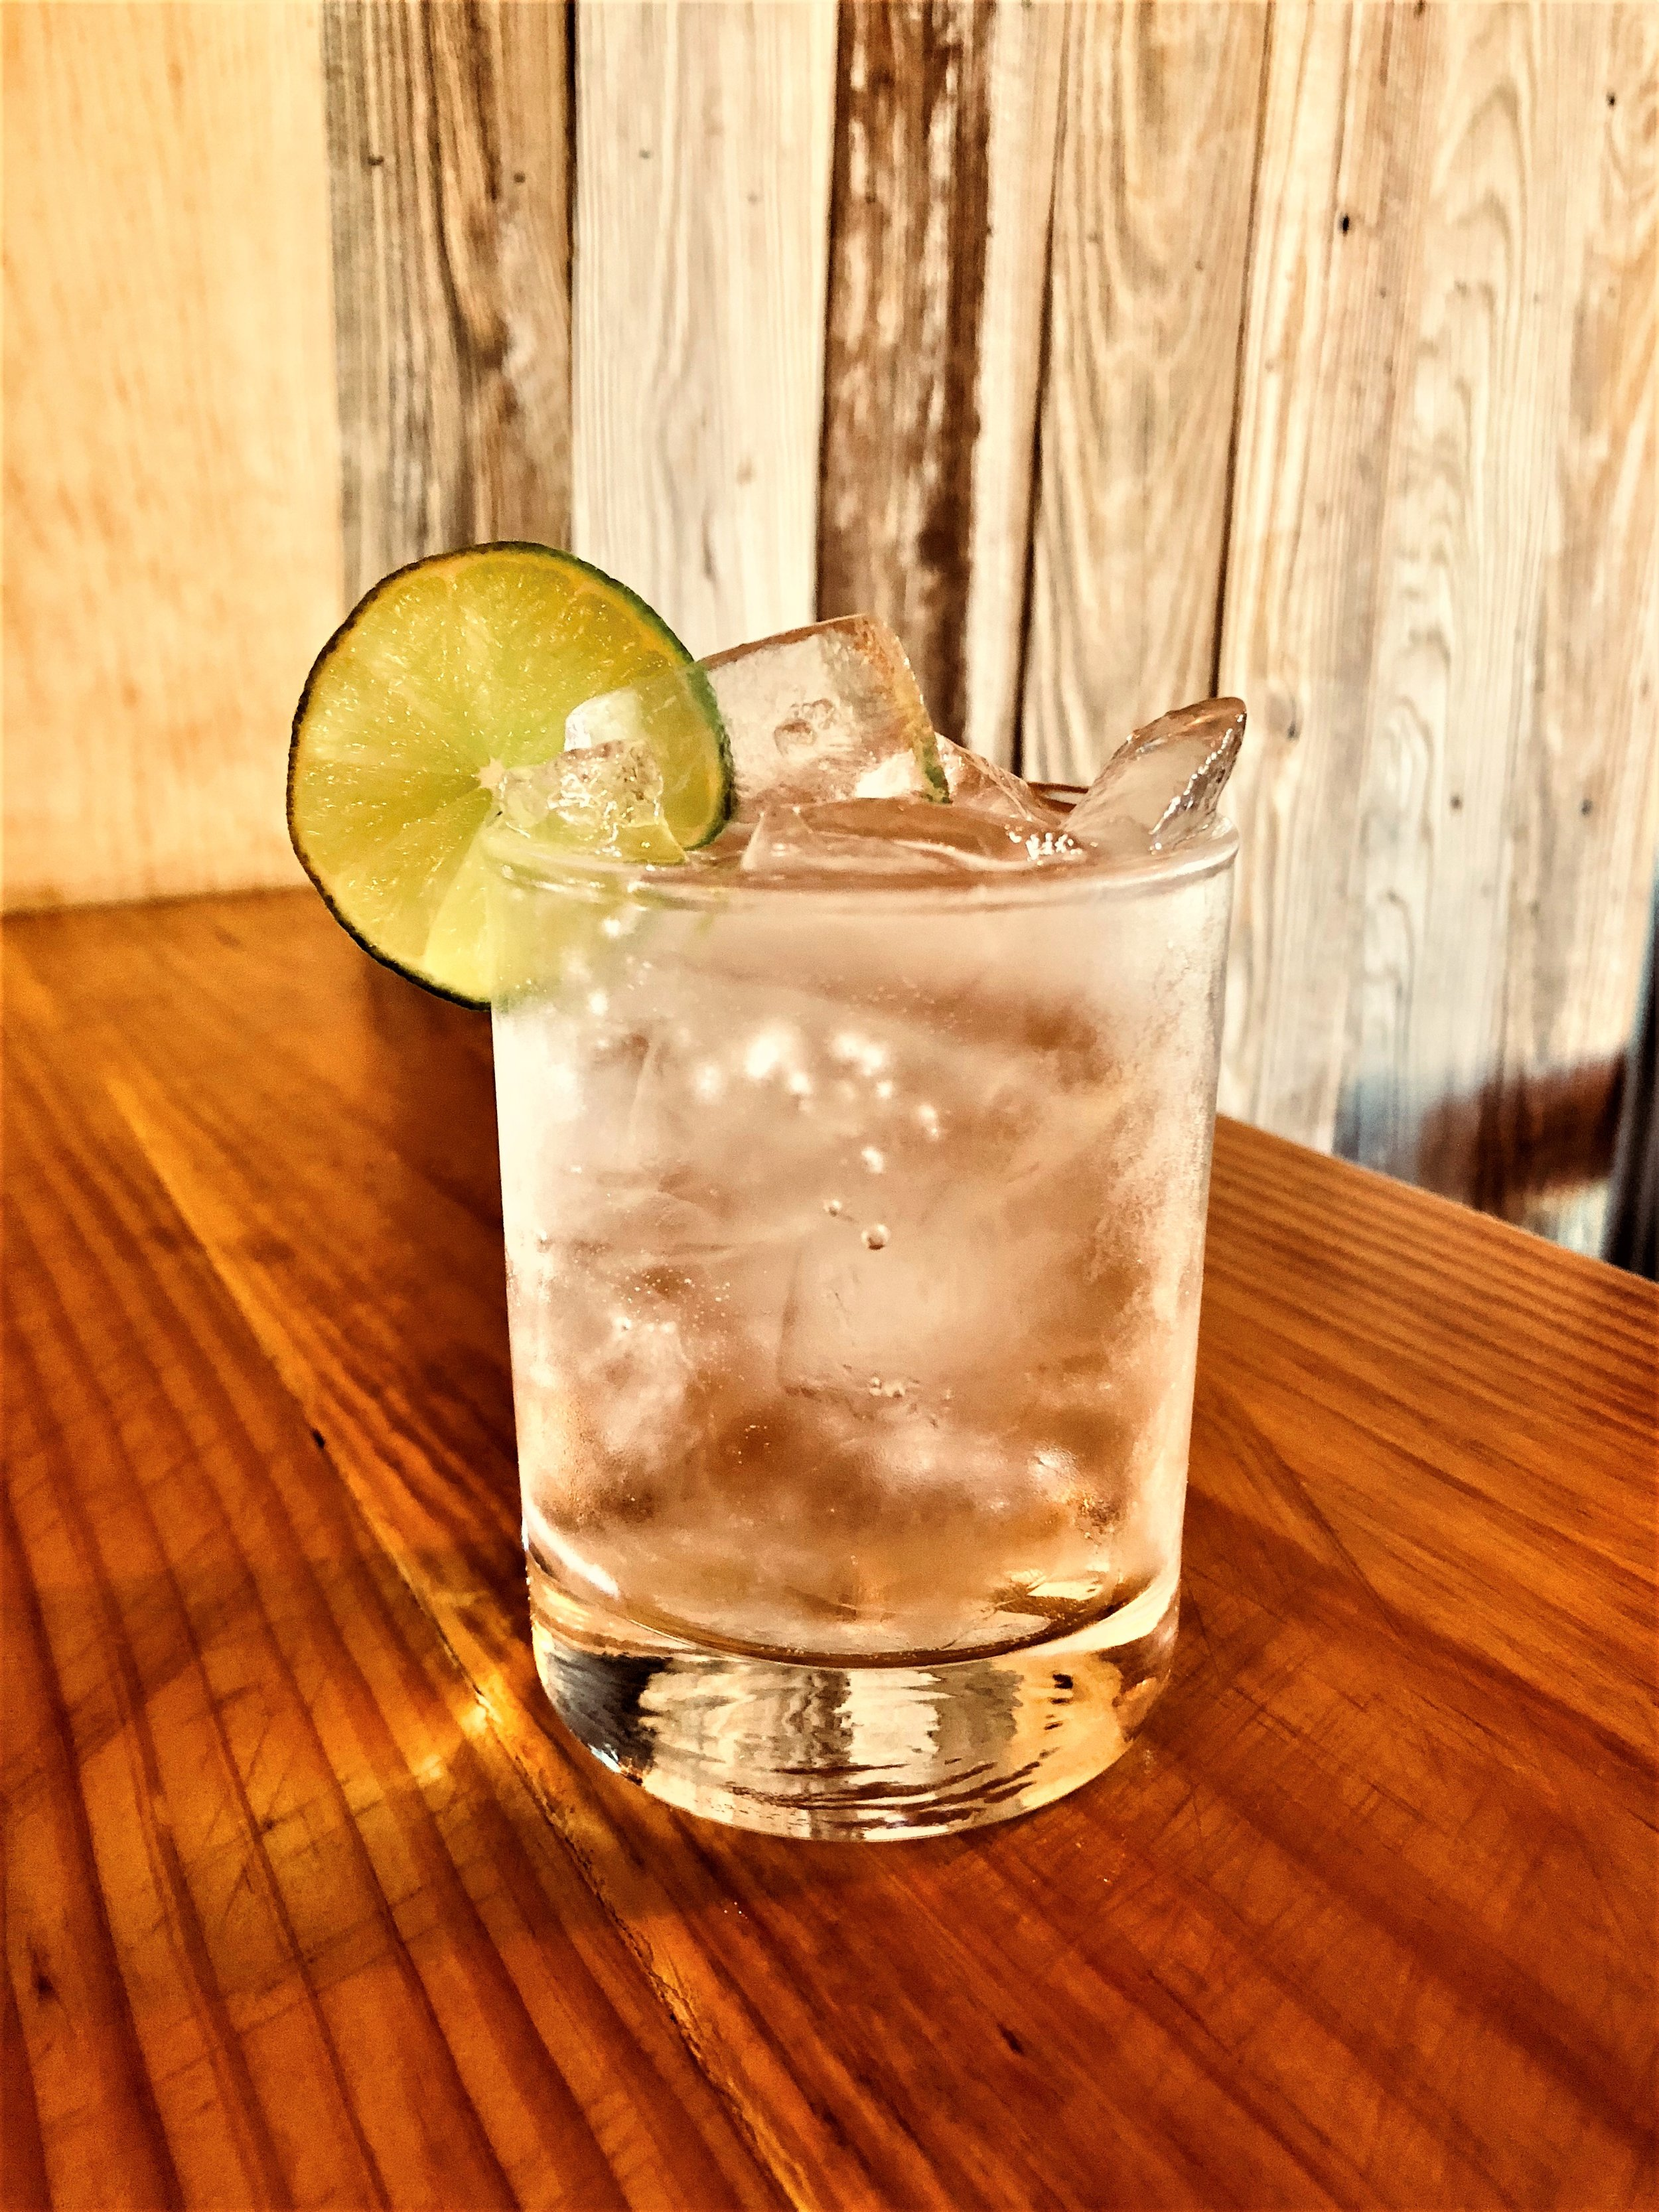 WRV CLUB   2 ounces of WILD RAG VODKA or WILD RAG MESQUITE BEAN VODKA 3 ounces Club Soda 1/2 ounce of lime  Pour ingredients in a glass filled with ice. Garnish with key lime slice